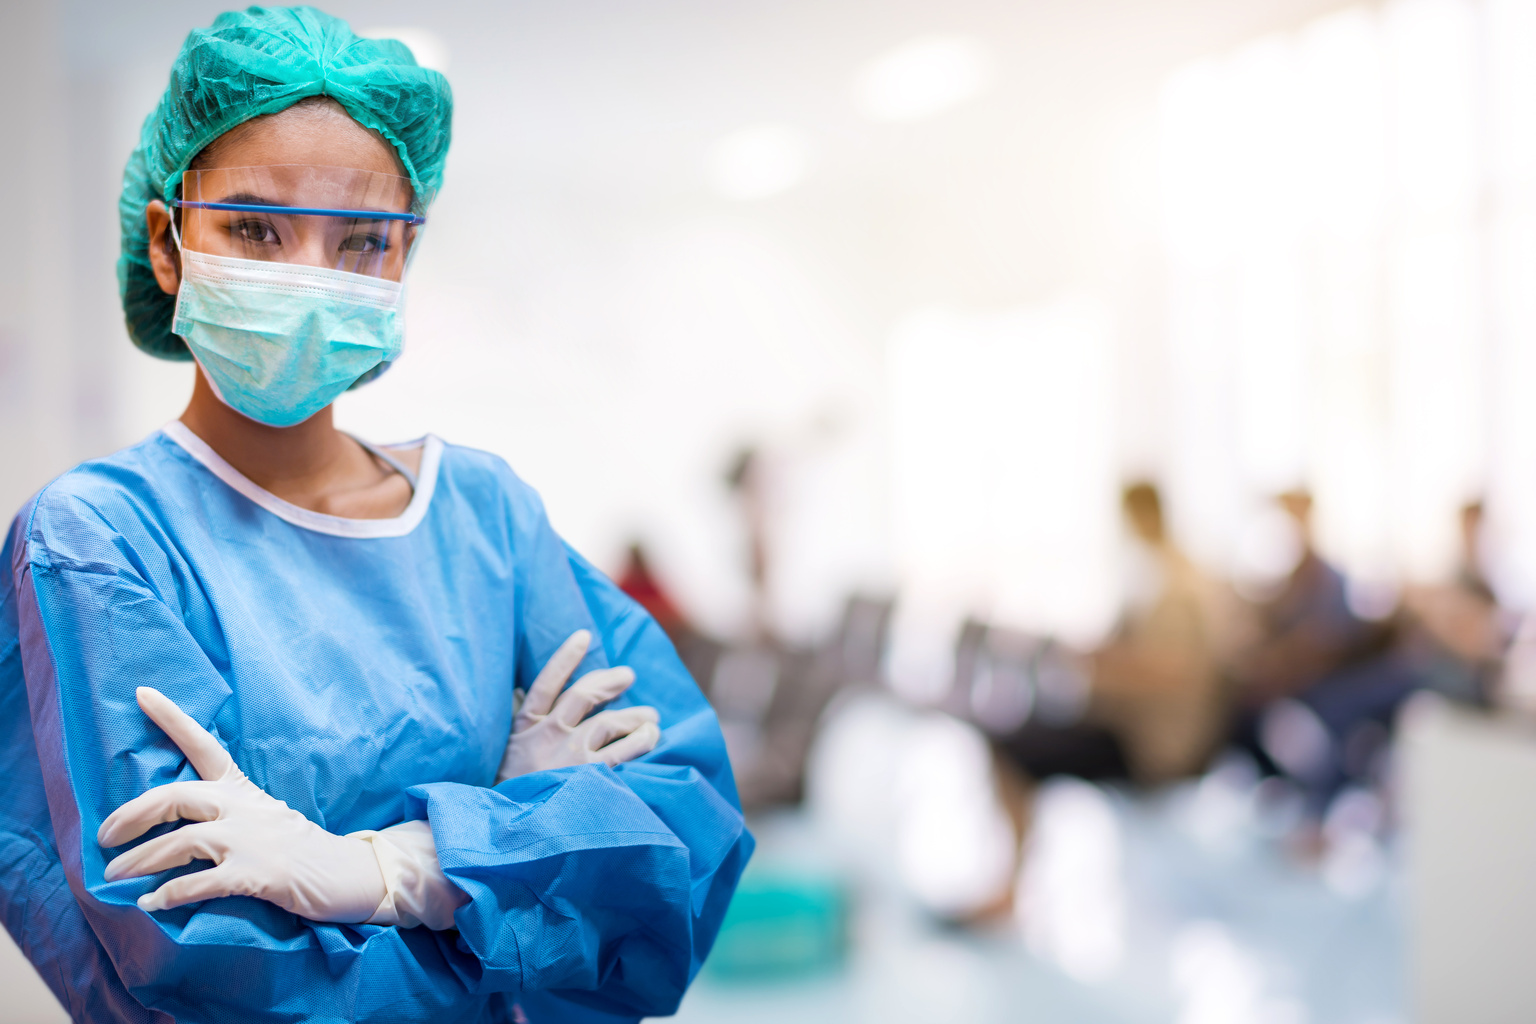 Confident medical professional woman in scrubs and COVID-19 mask